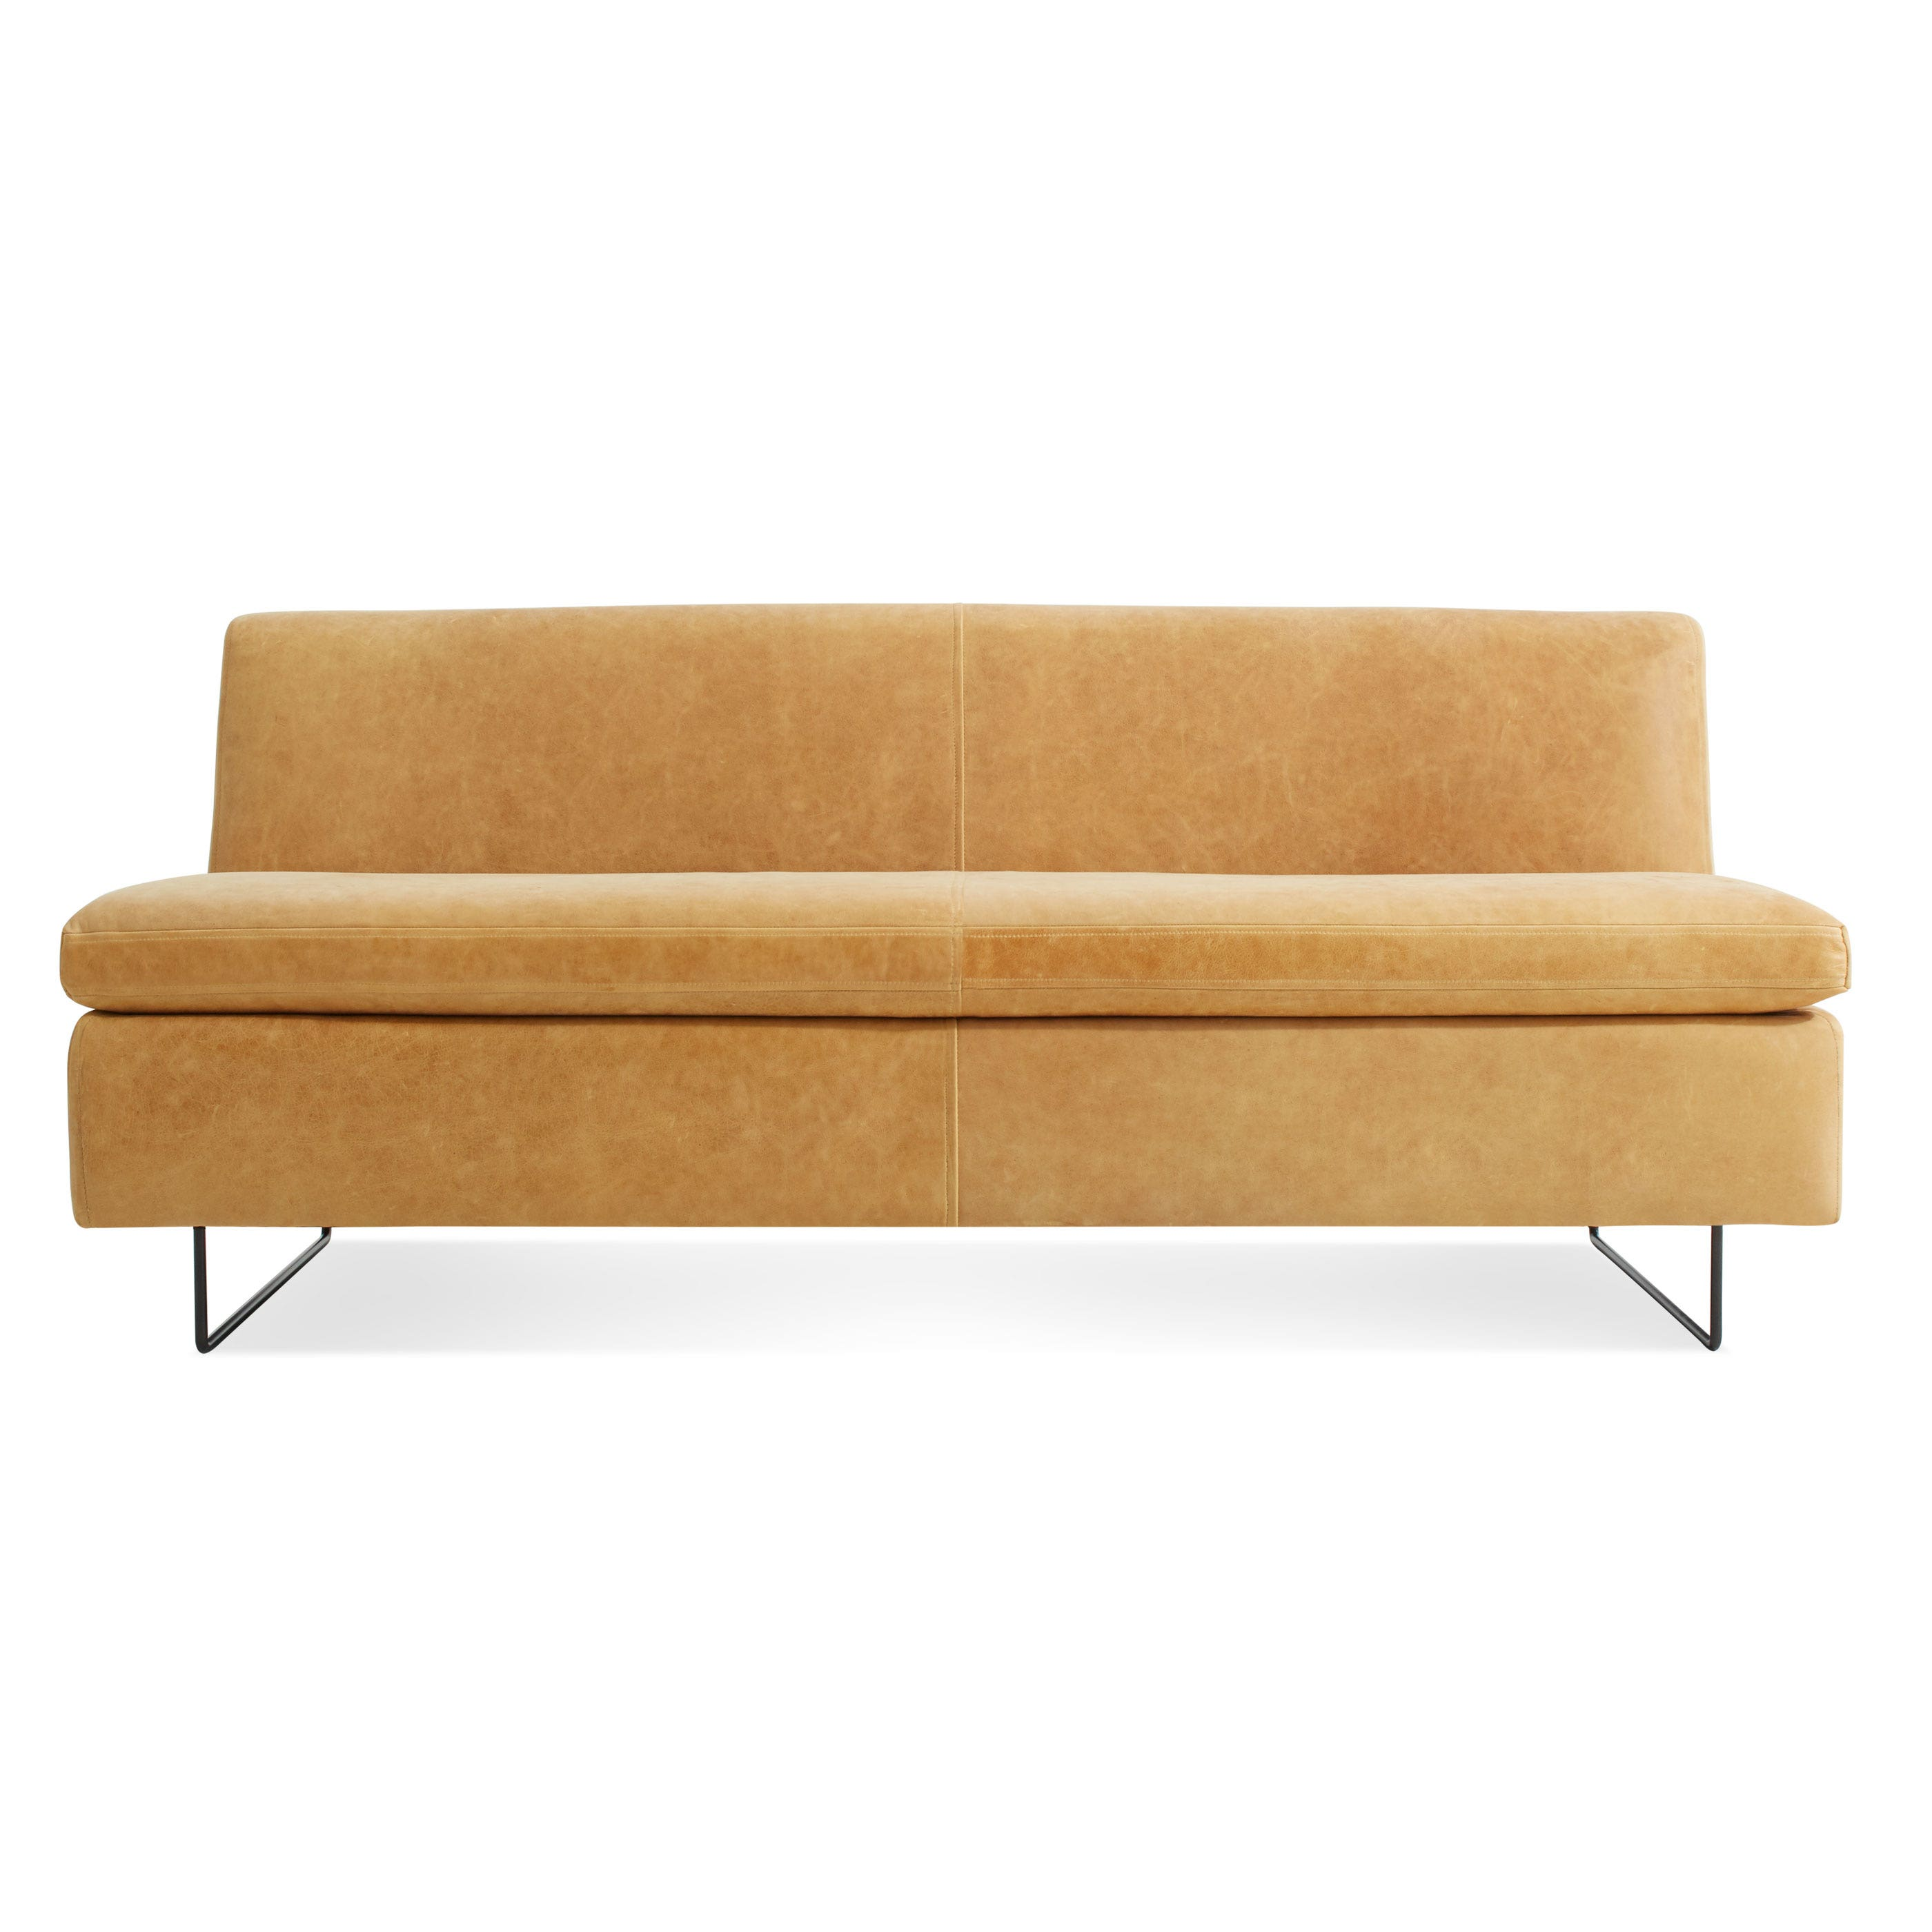 previous image clyde leather sofa - Sofa Leather